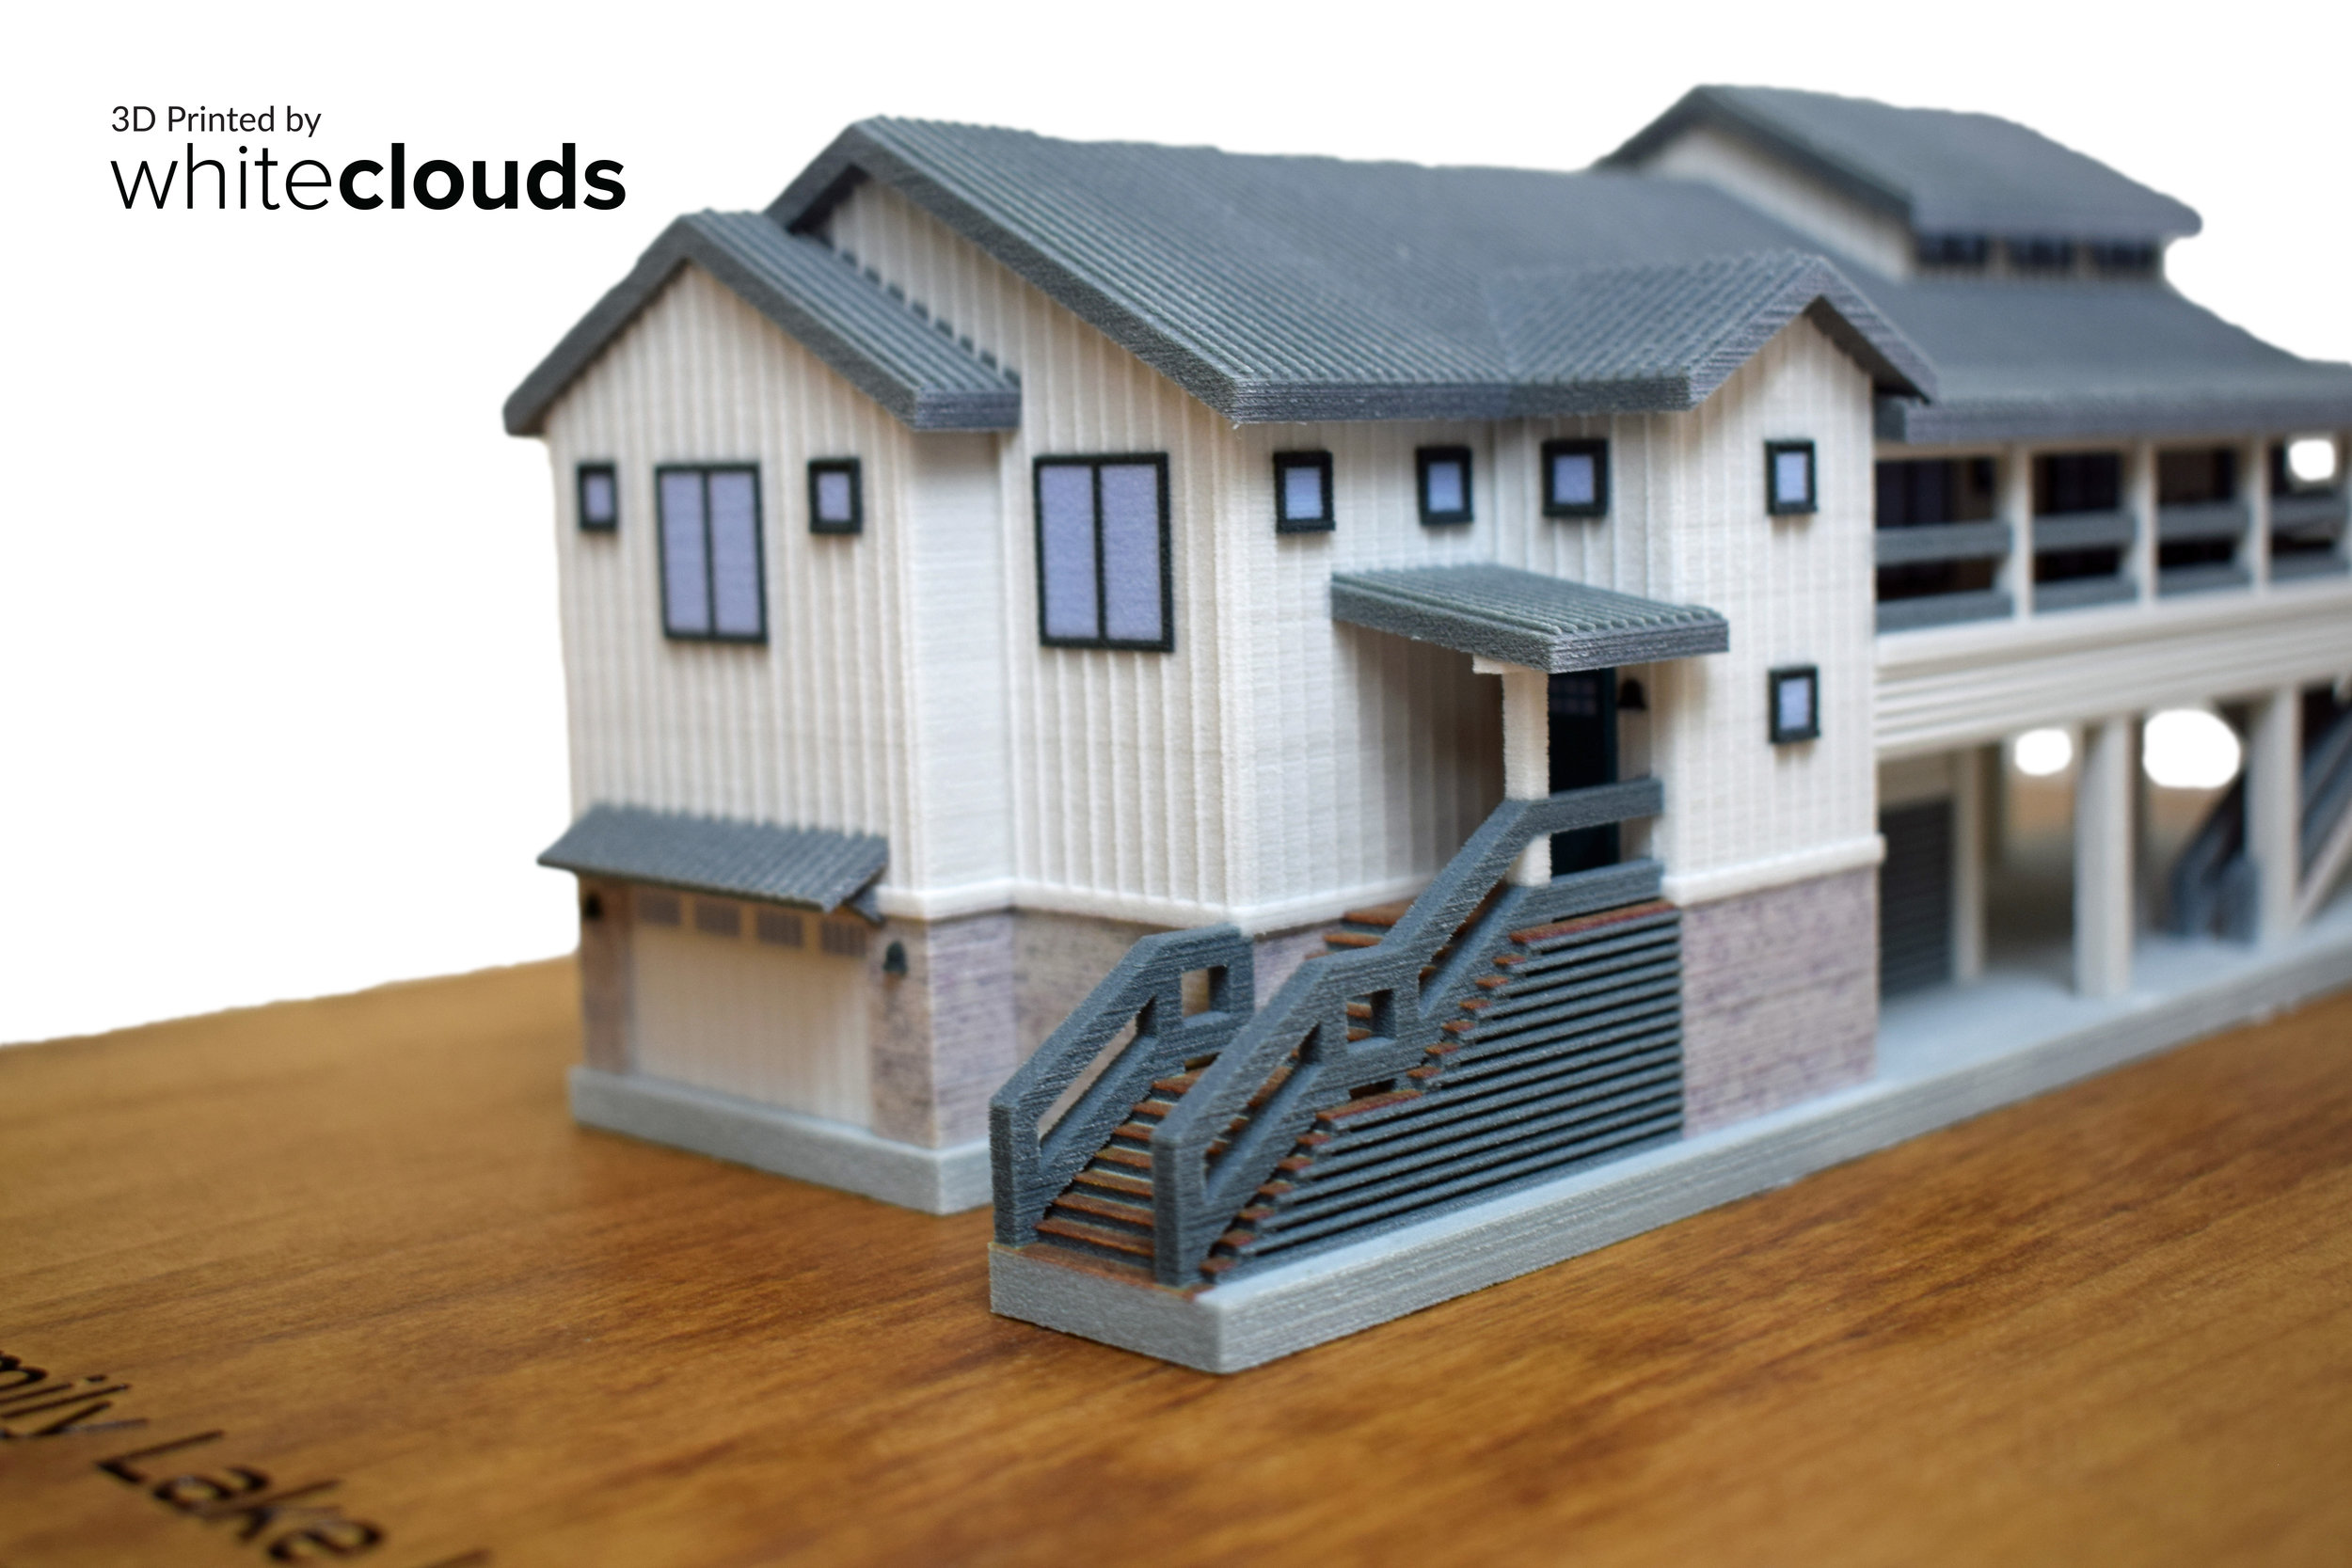 3D-Printed-WhiteClouds-Lake-House-Architecture-Kirk-Family-Lake-Home-Website-4.JPG